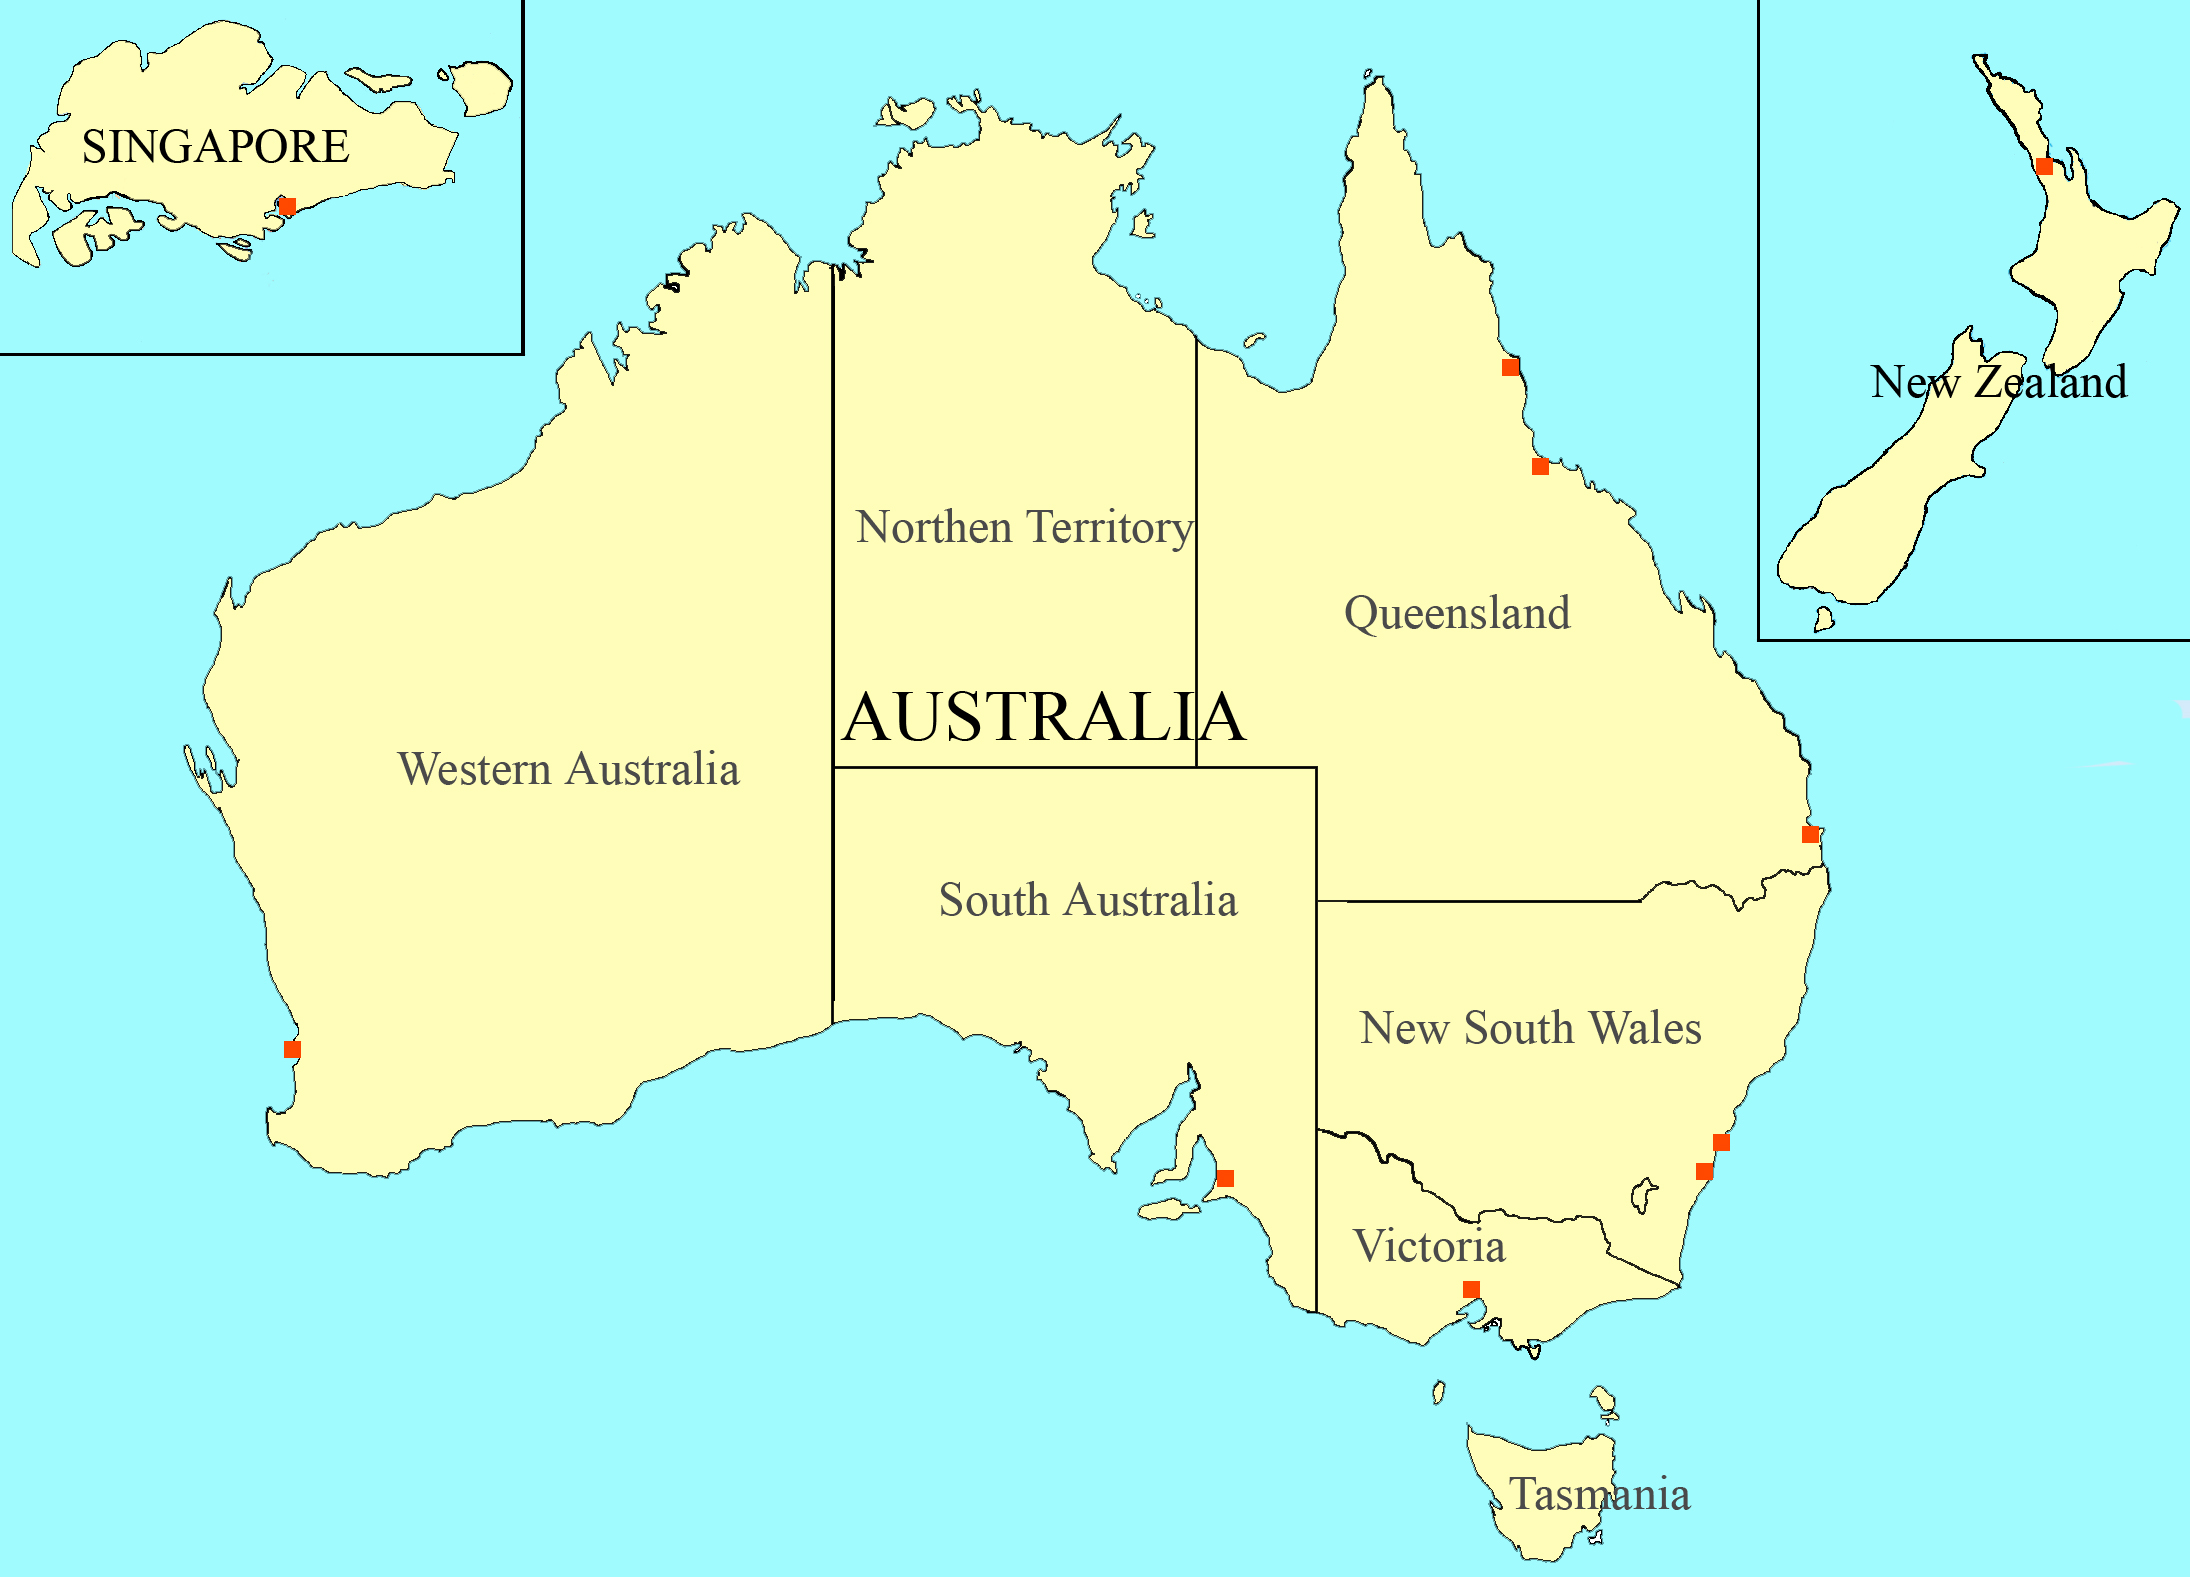 Map Of Australia Labelled.Template Nbl Labelled Map Wikipedia